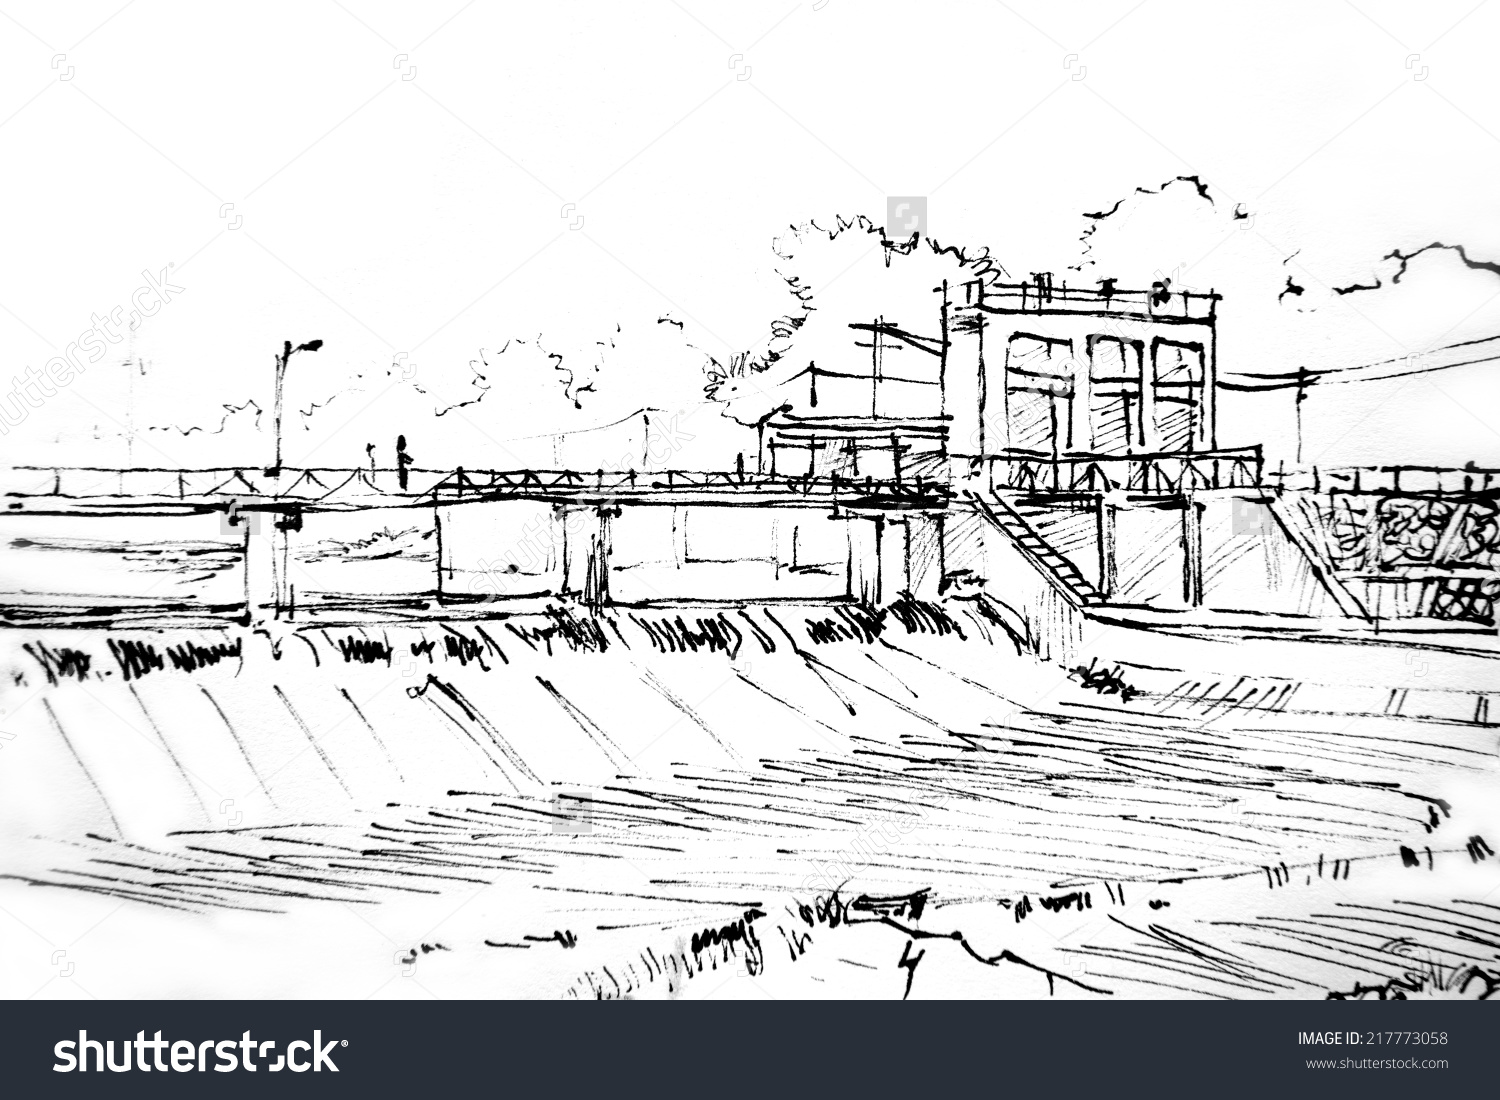 Dam Hand Draw Sketch Picture Stock Illustration 217773058.